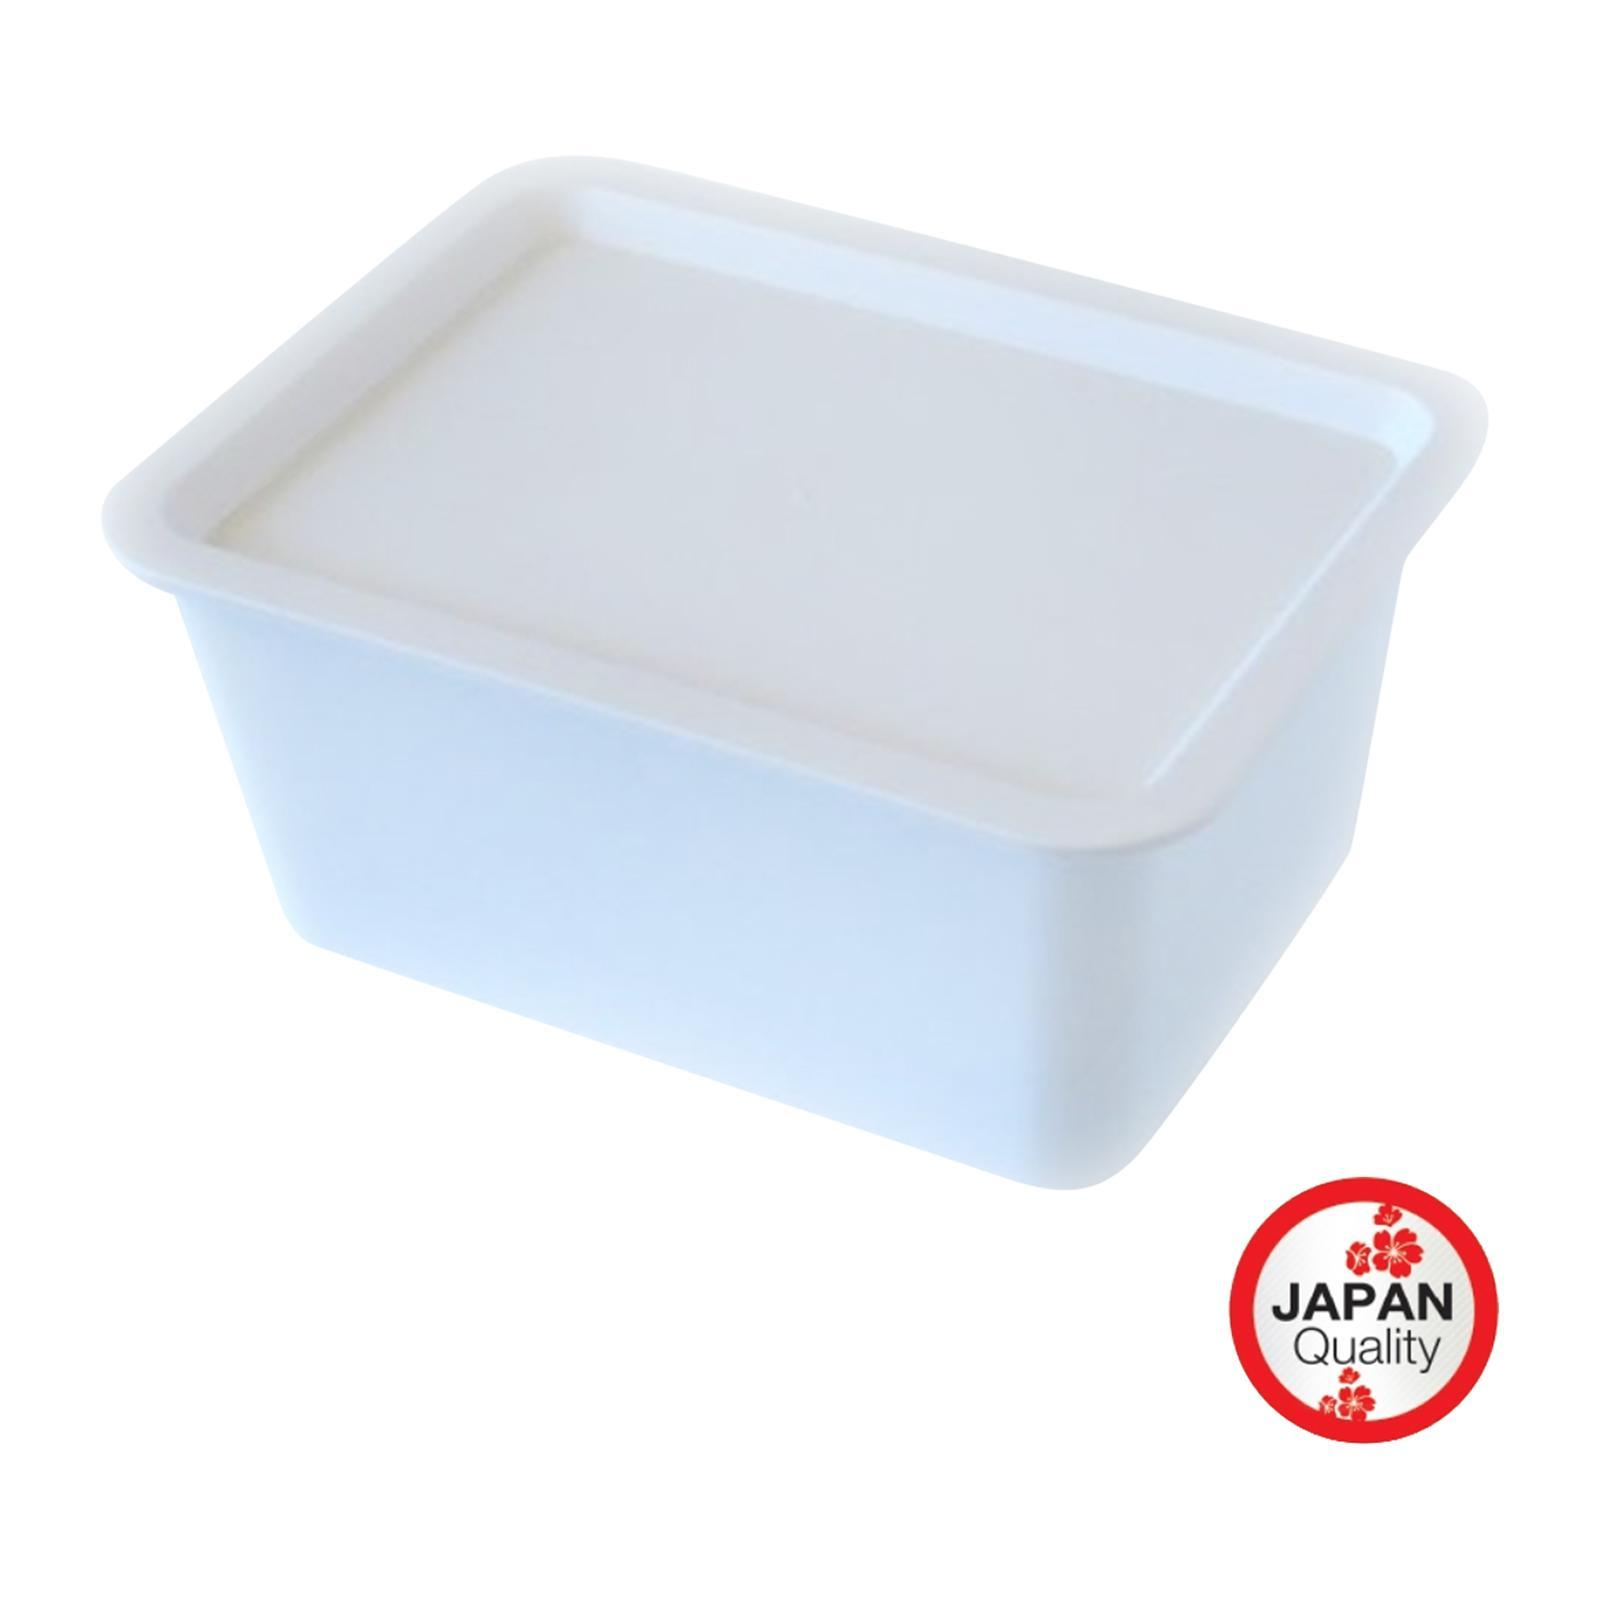 Nomi - Stationery Storage Box With Lid -White Color